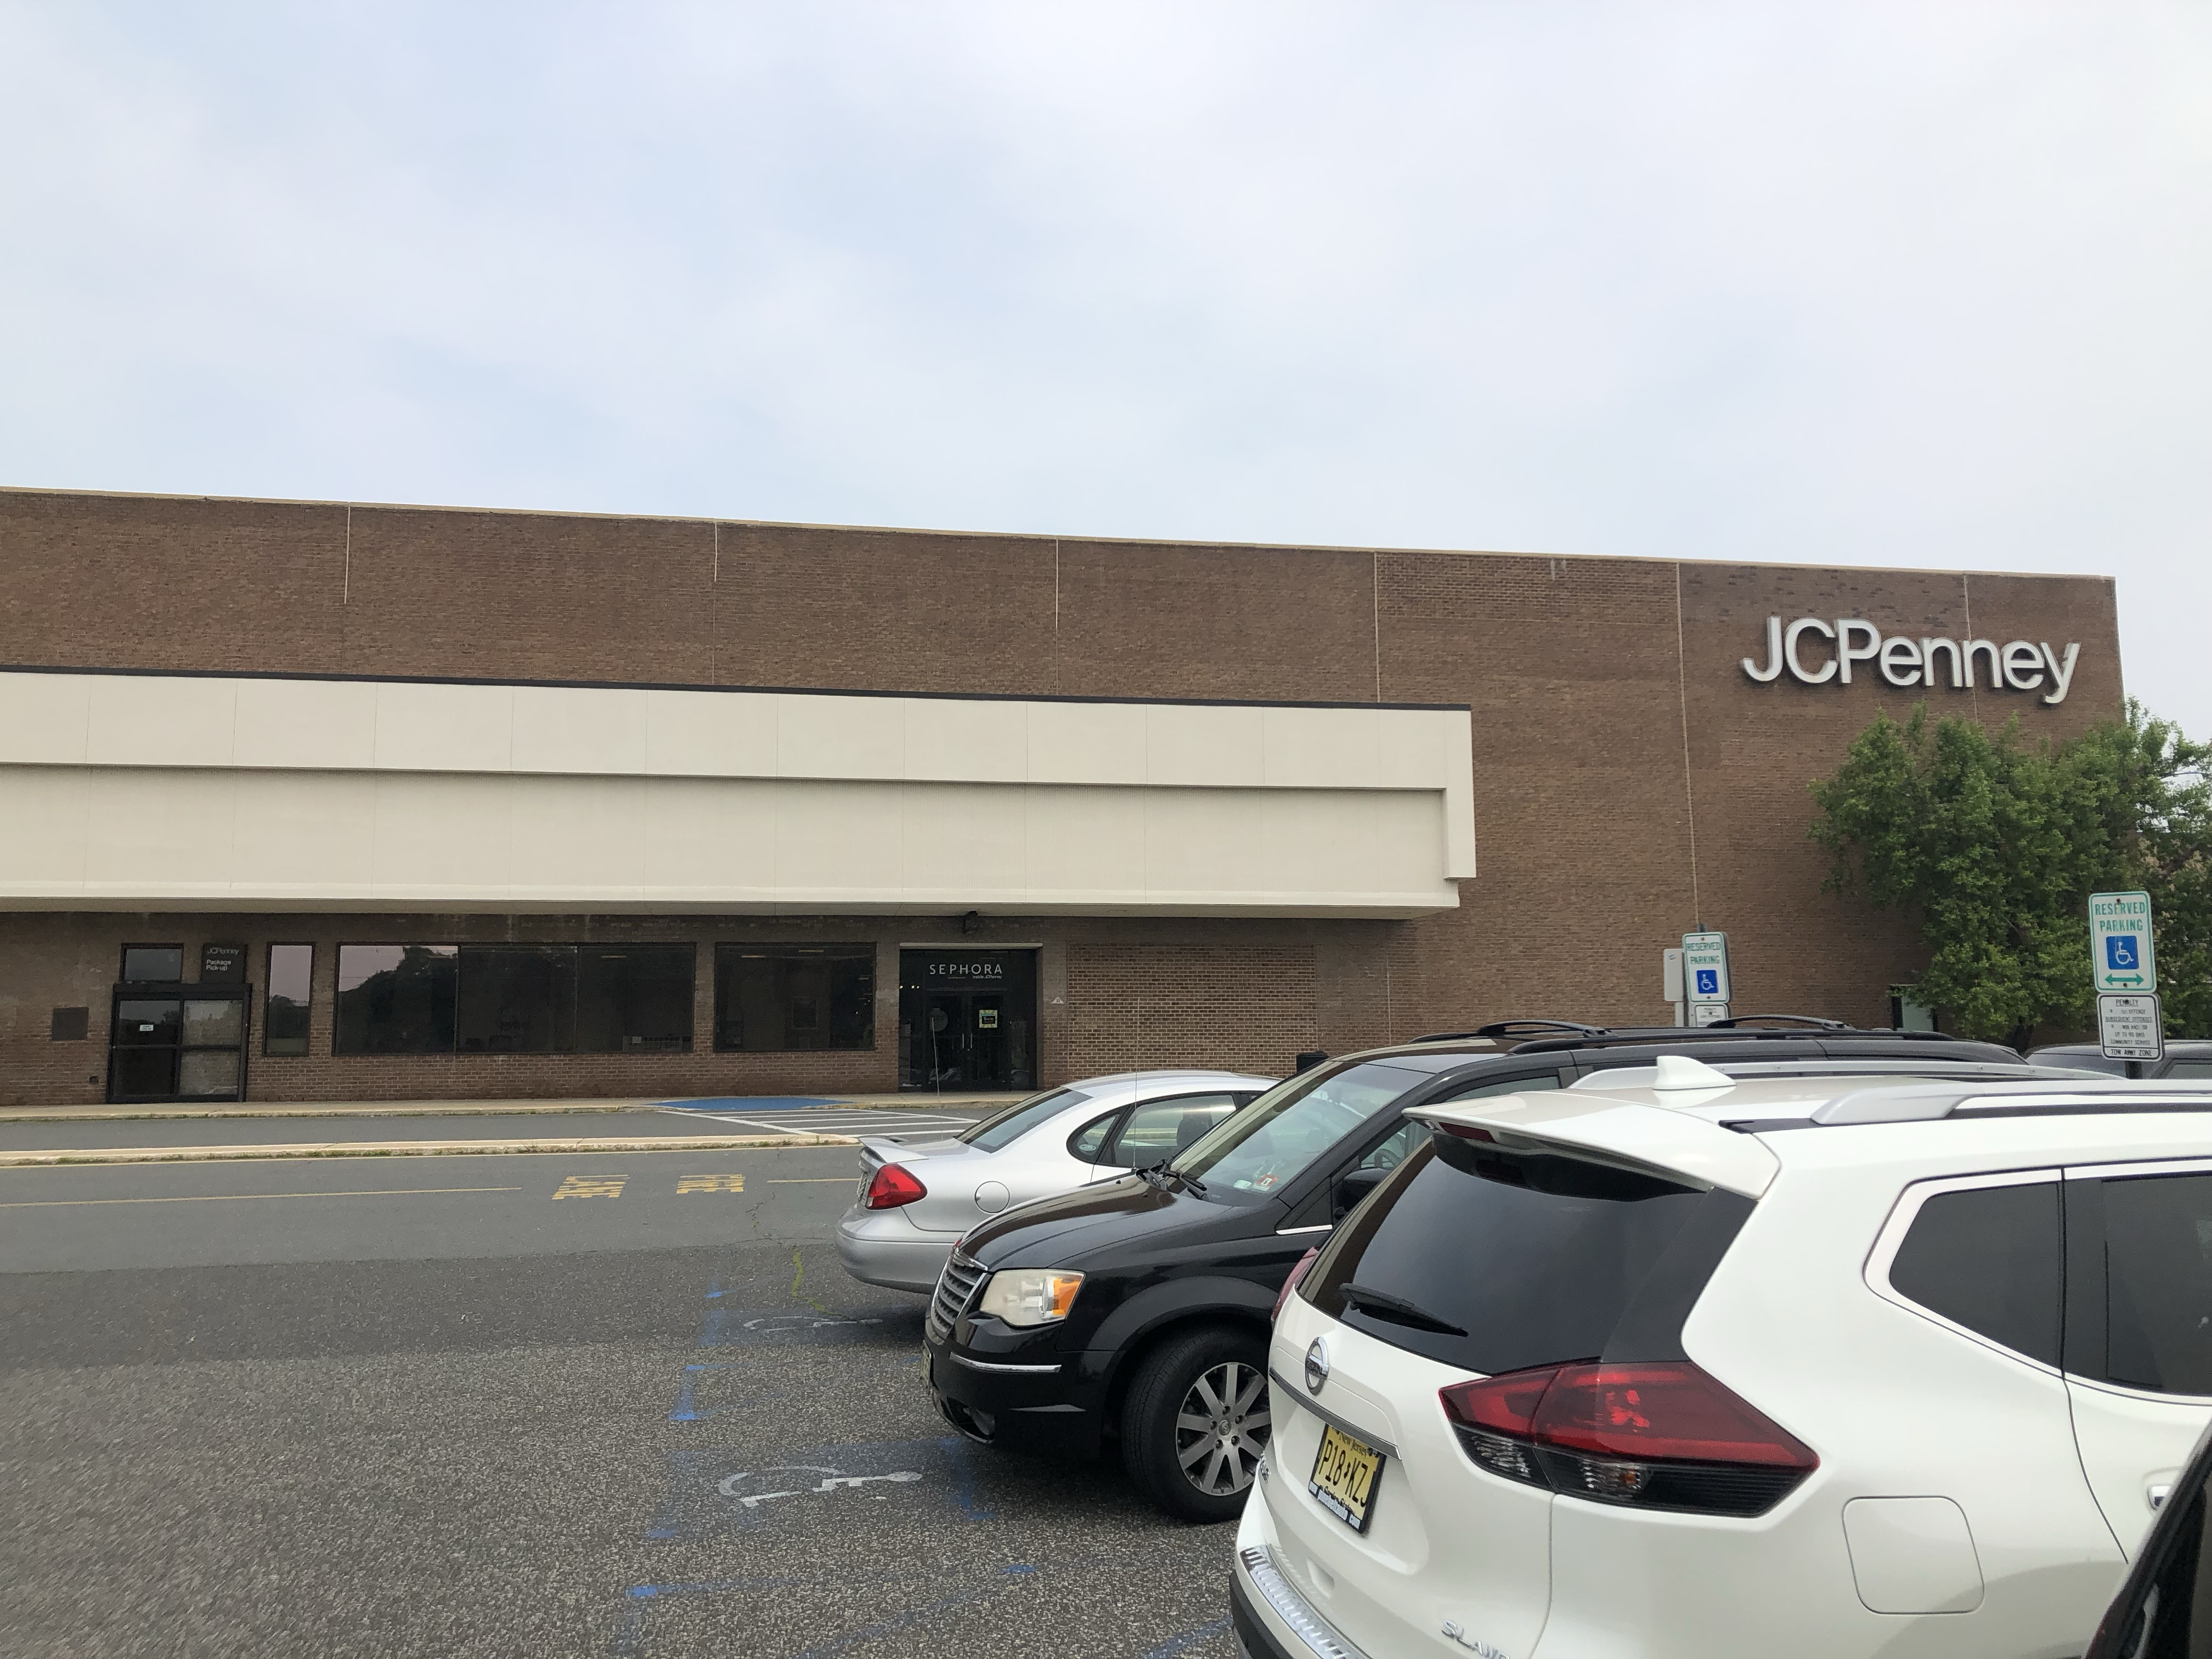 JCPenney to Declare Bankruptcy and close 200 Stores